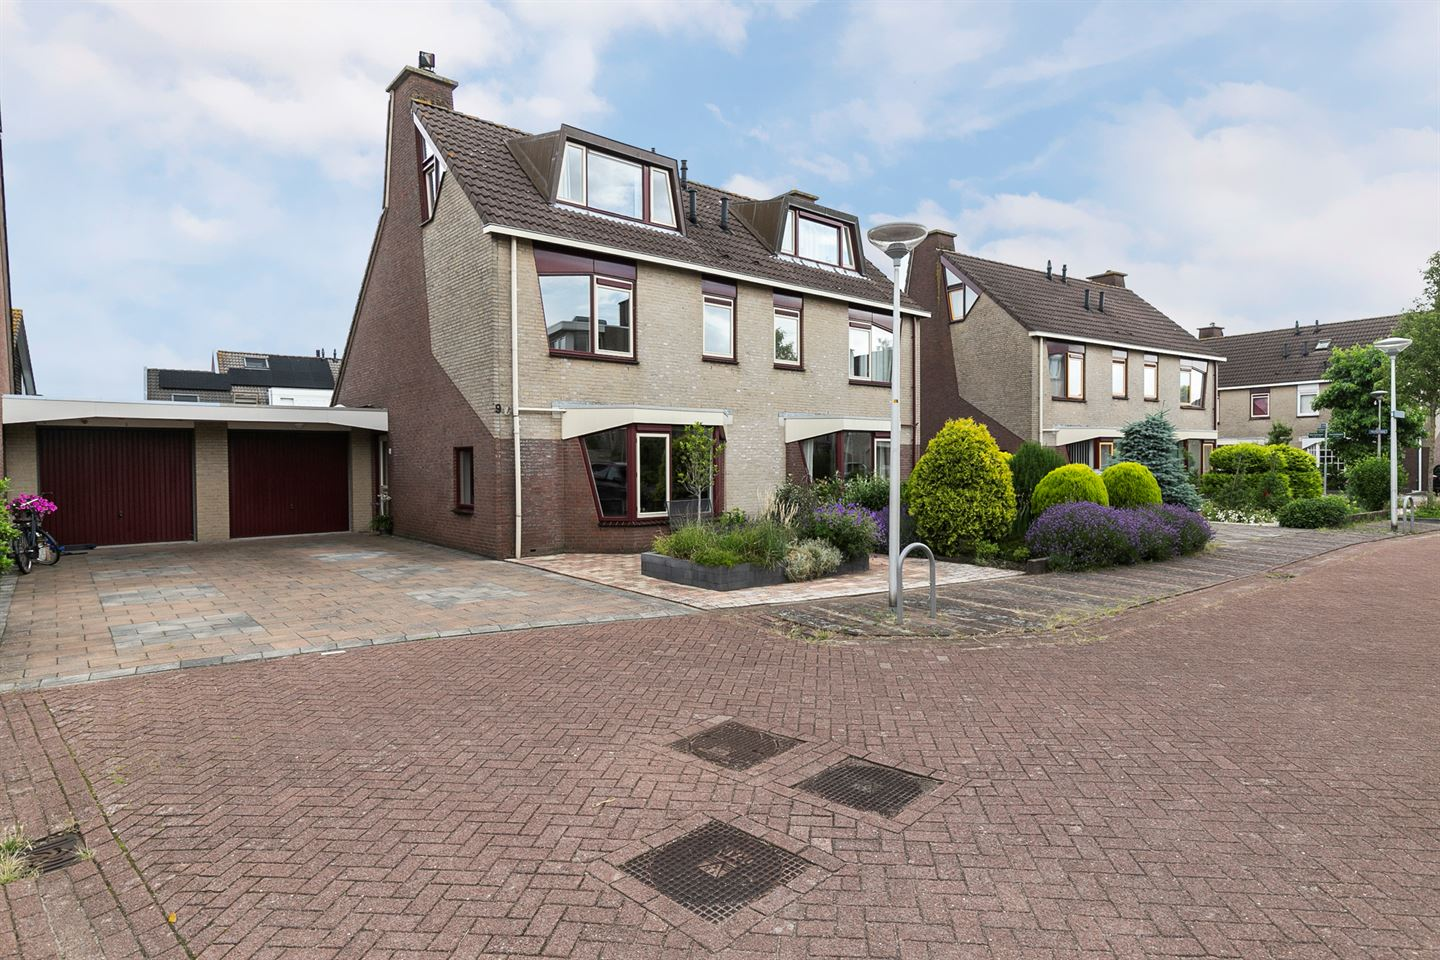 View photo 1 of Luchtstraat 9